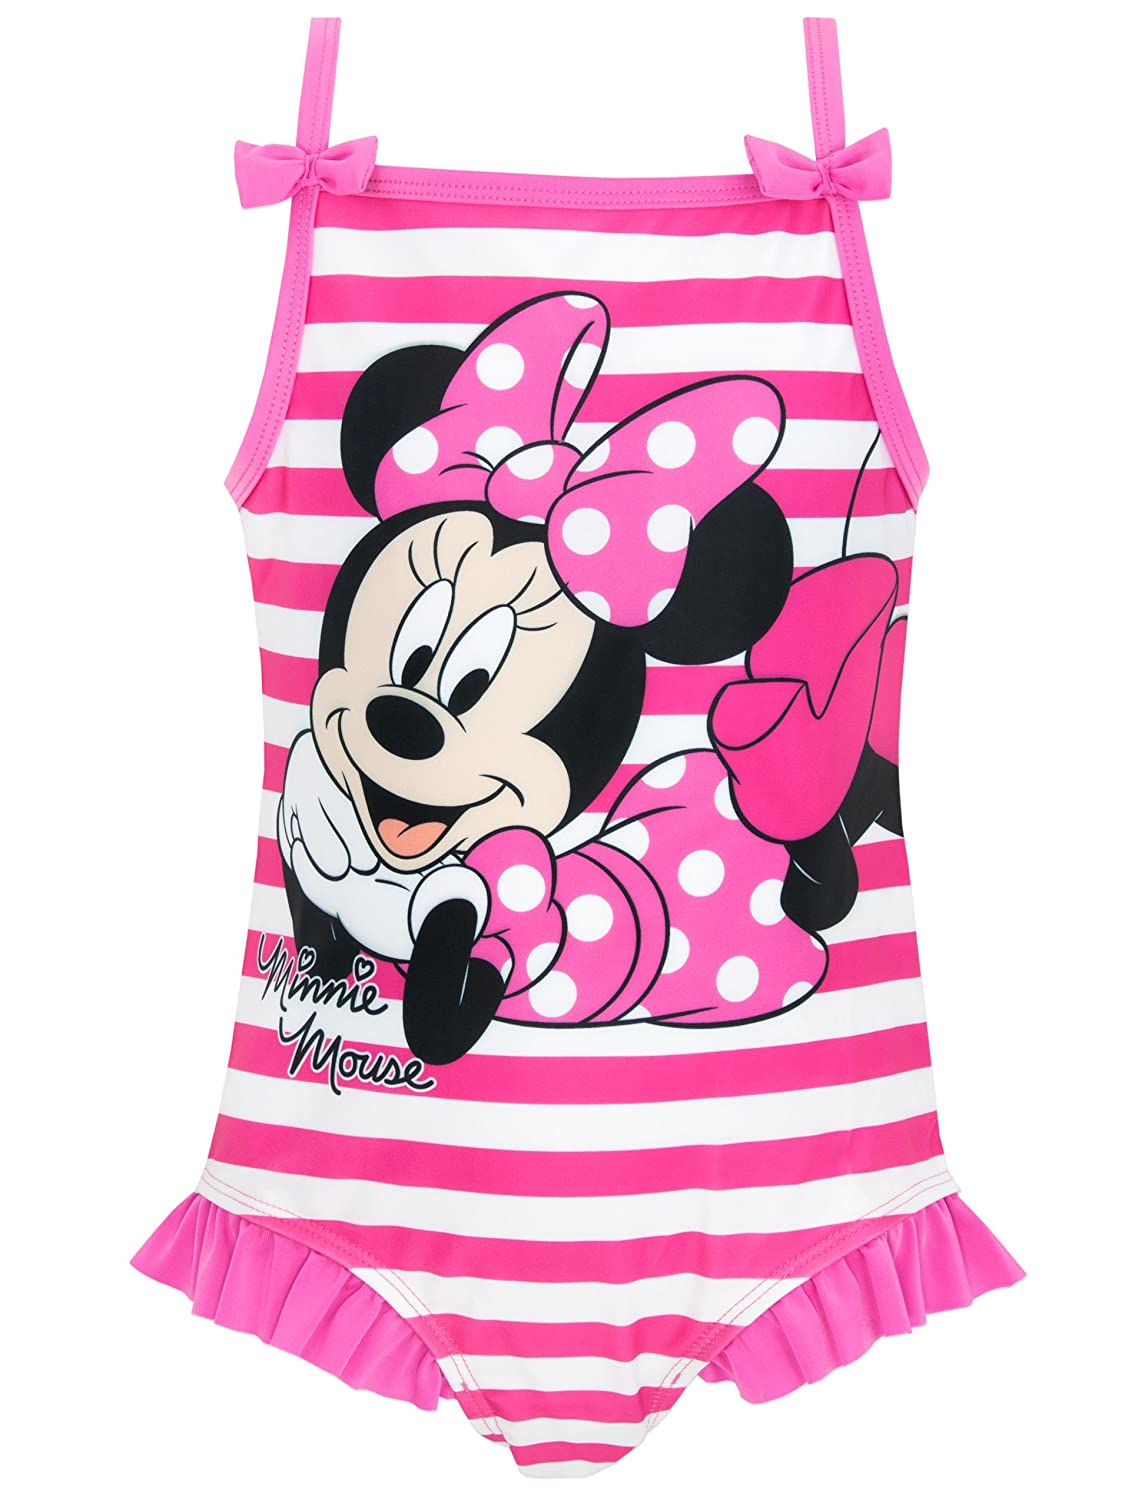 Disney Minnie Mouse Girls Minnie Mouse Swimsuit Ages 18 Months to 7 Years